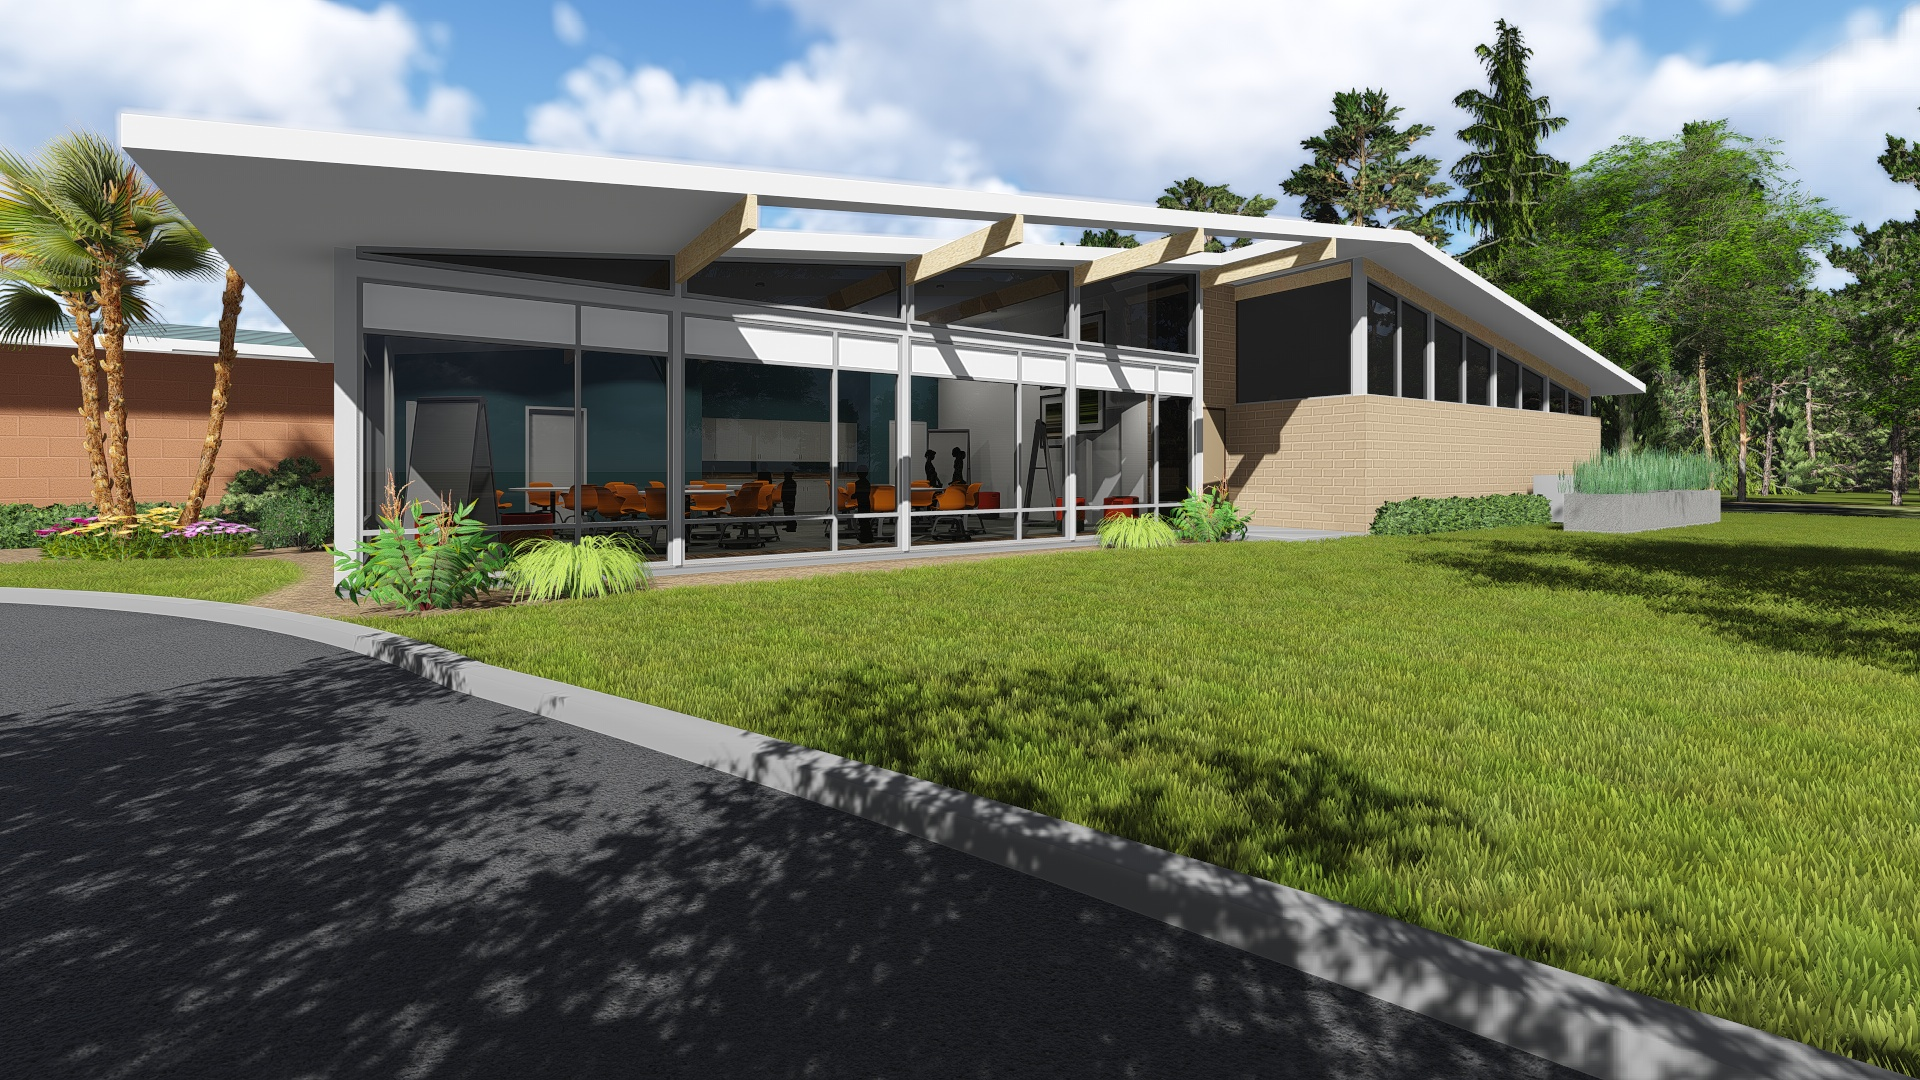 A Rendering Of Our New Media and Technology Center